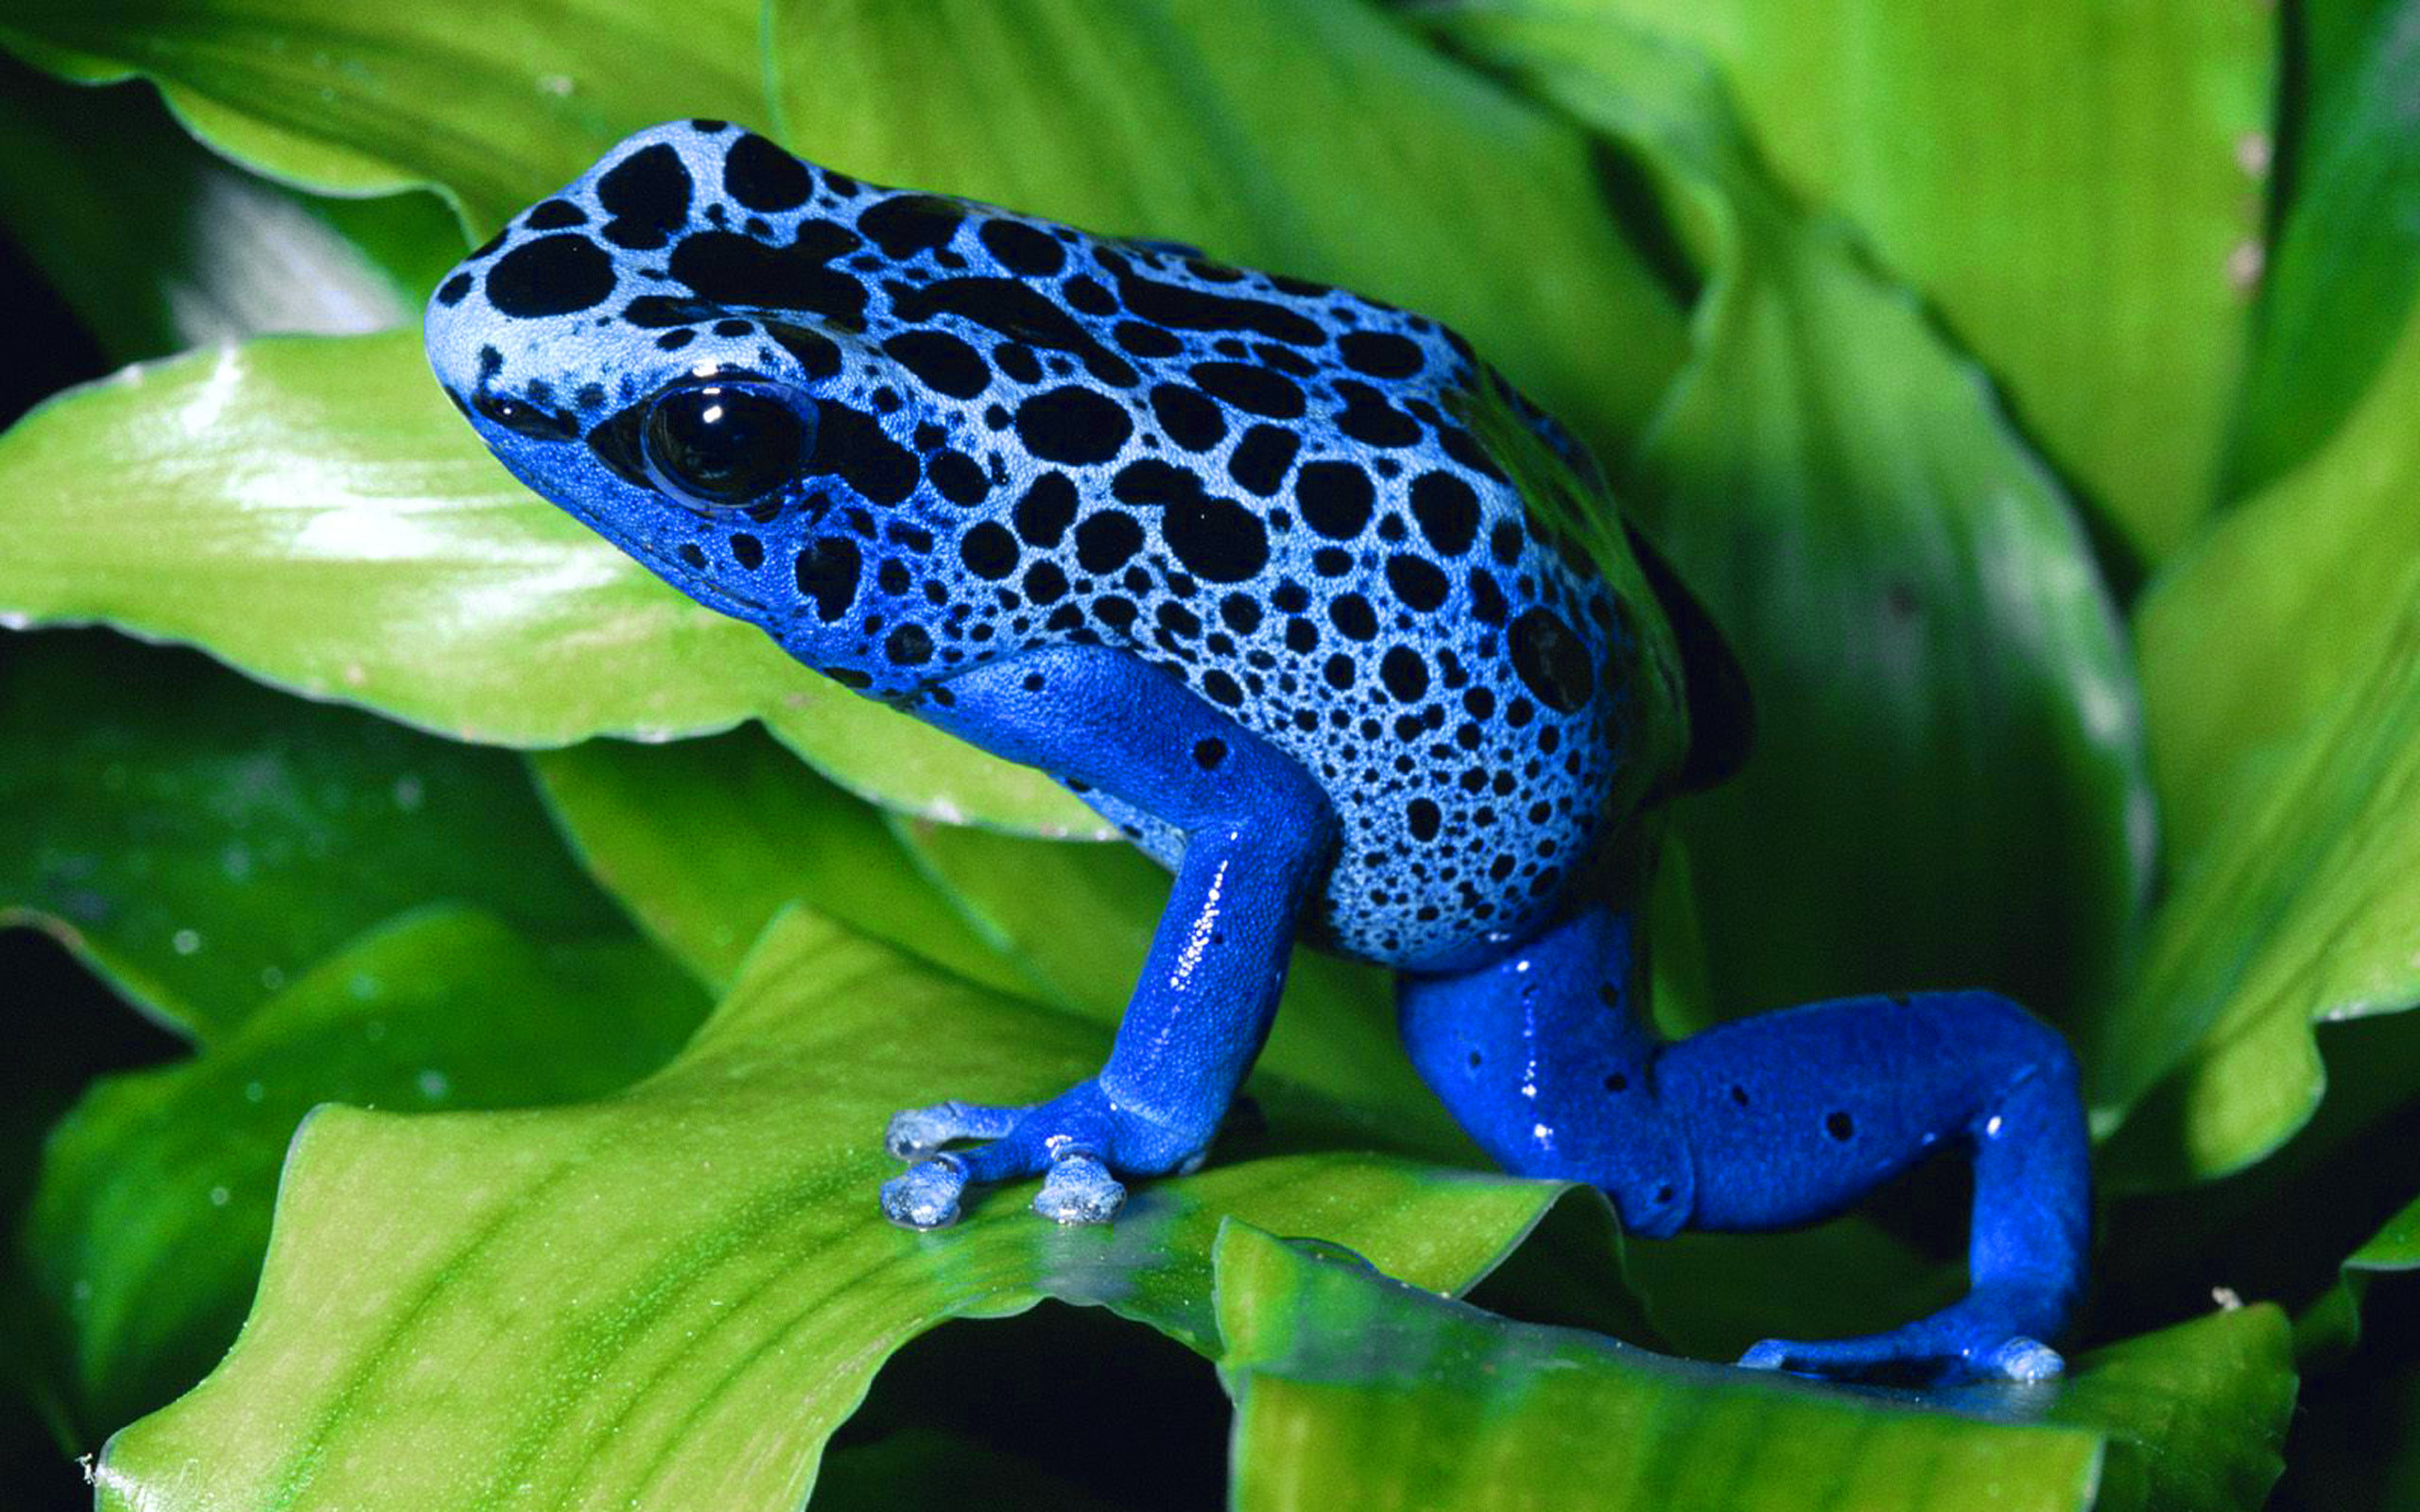 Stunning Black Wallpapers Poisonous Frog With Unusual Blue Desktop Wallpaper Hd Free